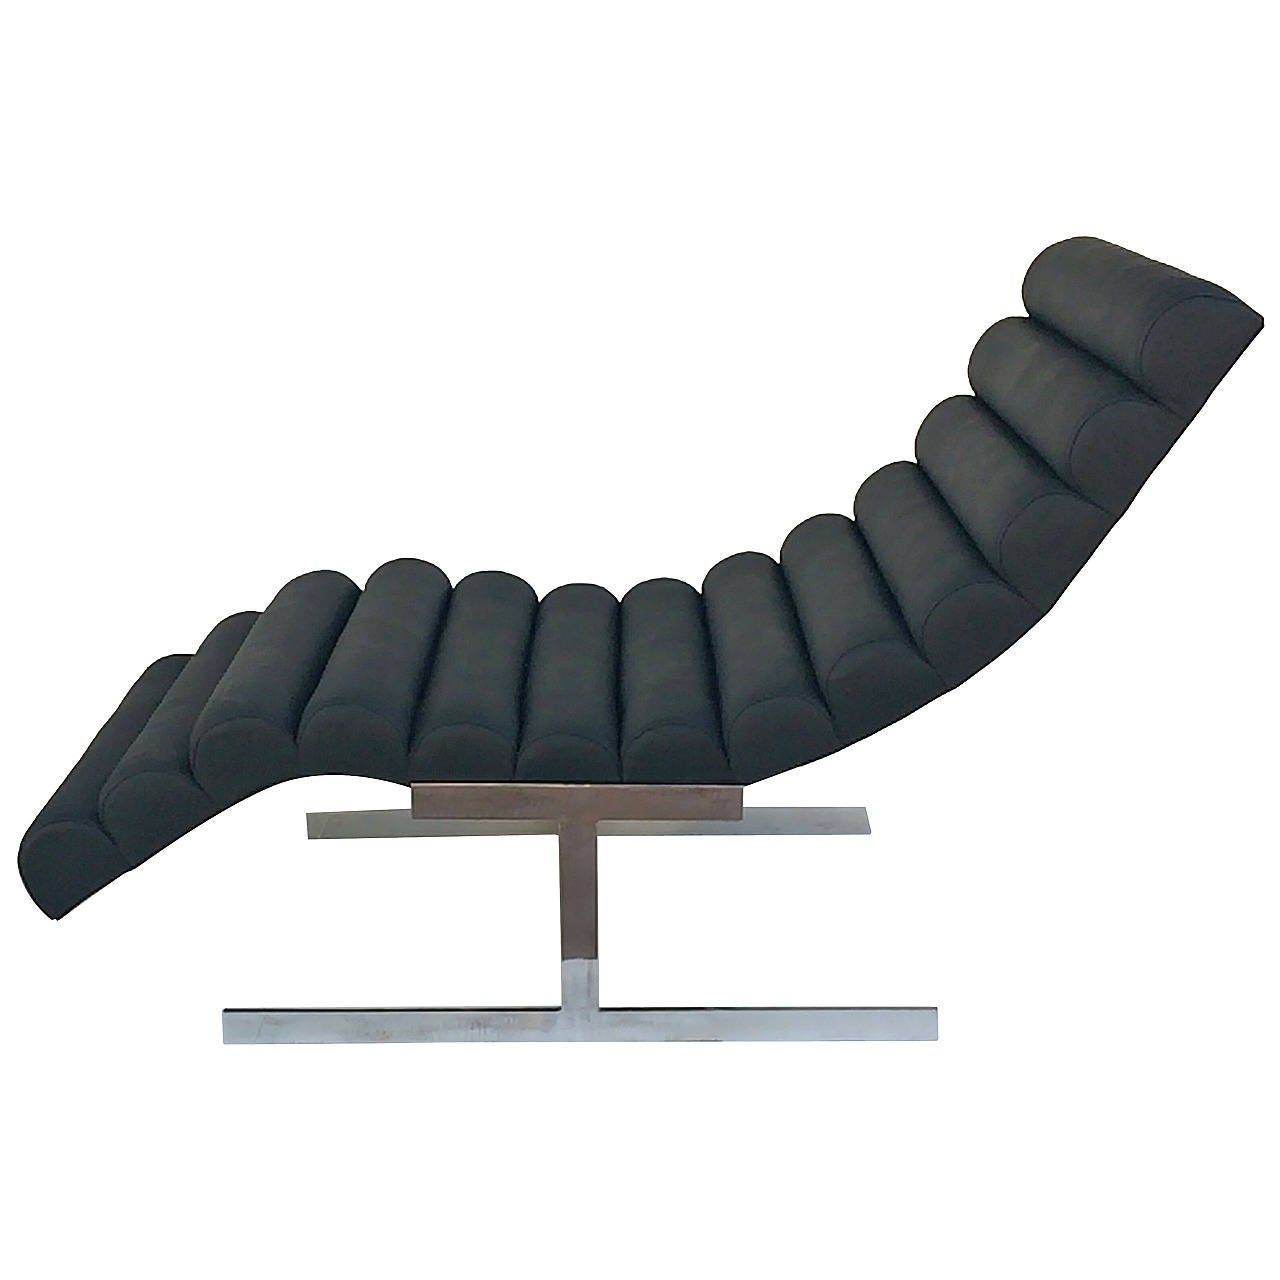 black channeled leather chaise lounge by milo baughman at stdibs - black channeled leather chaise lounge by milo baughman